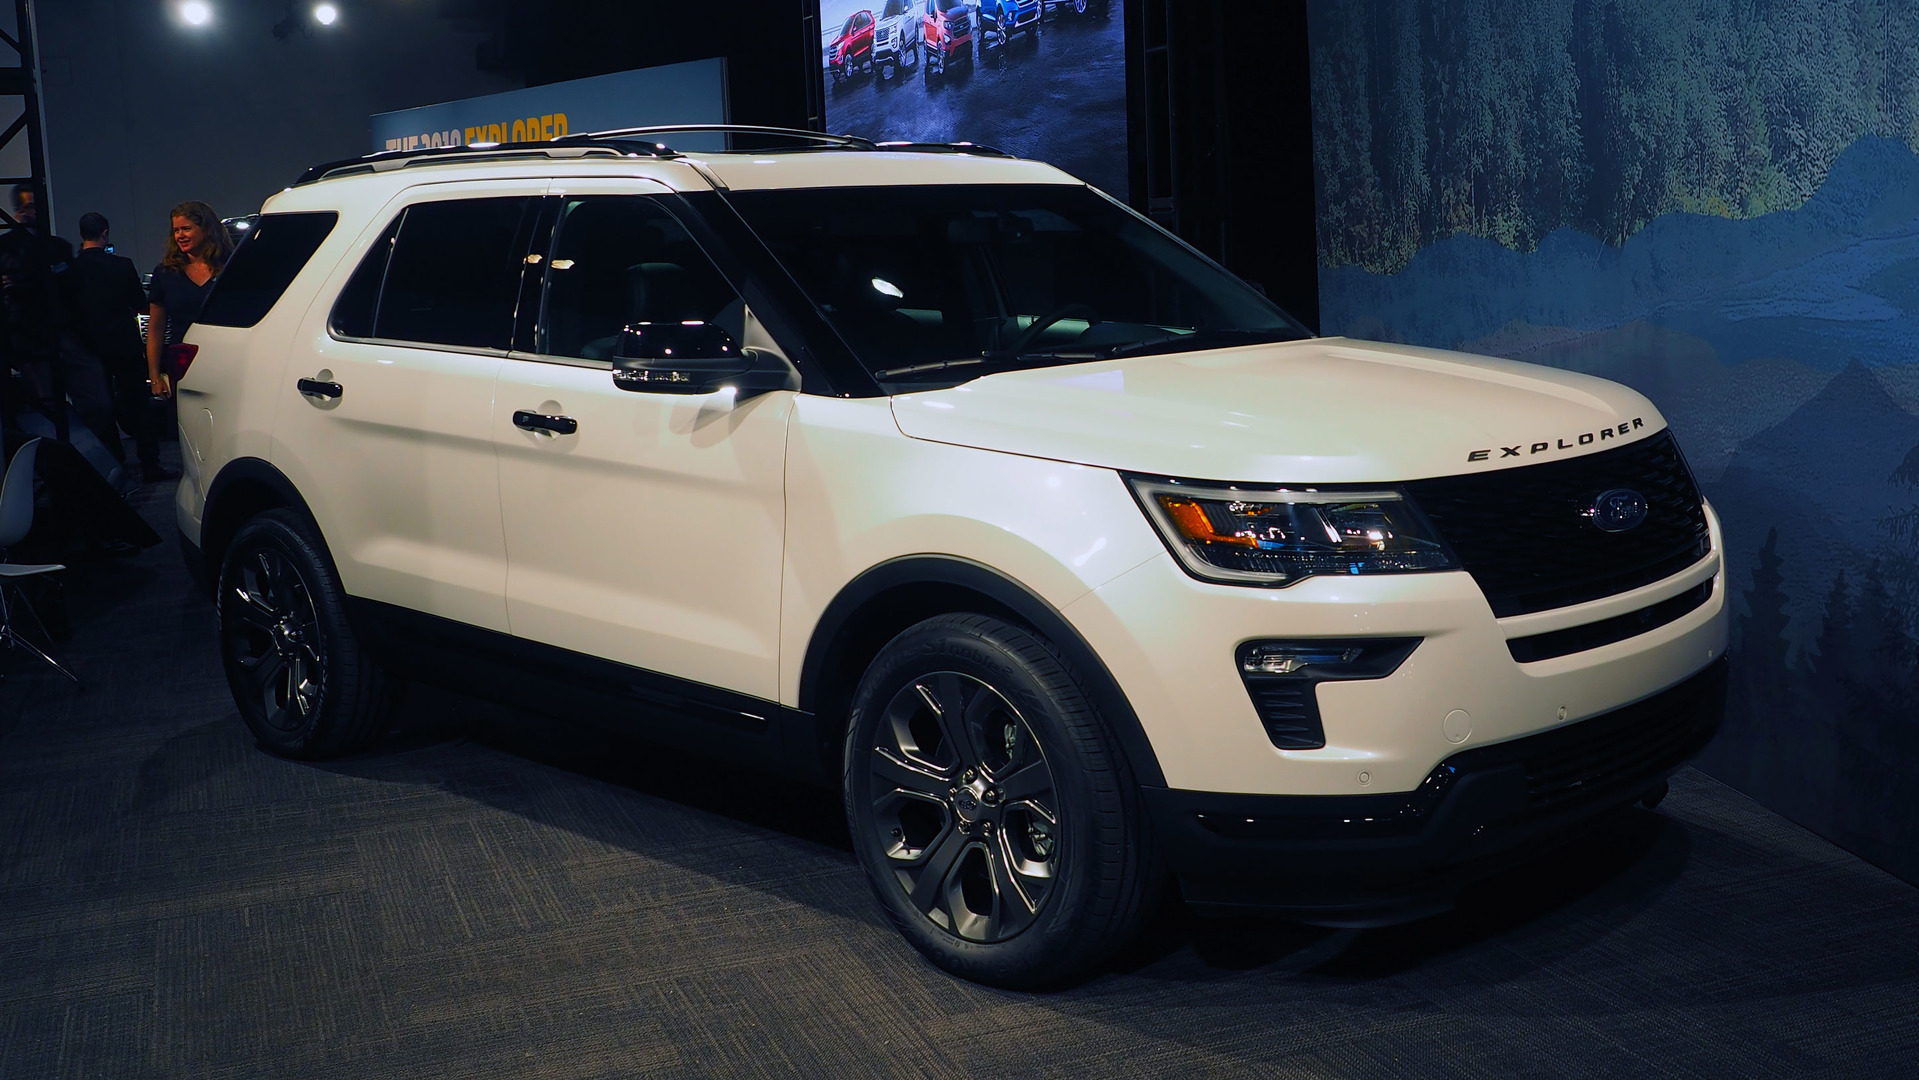 Ford Explorer Updates Include More Tech Safety Options - Ford show car